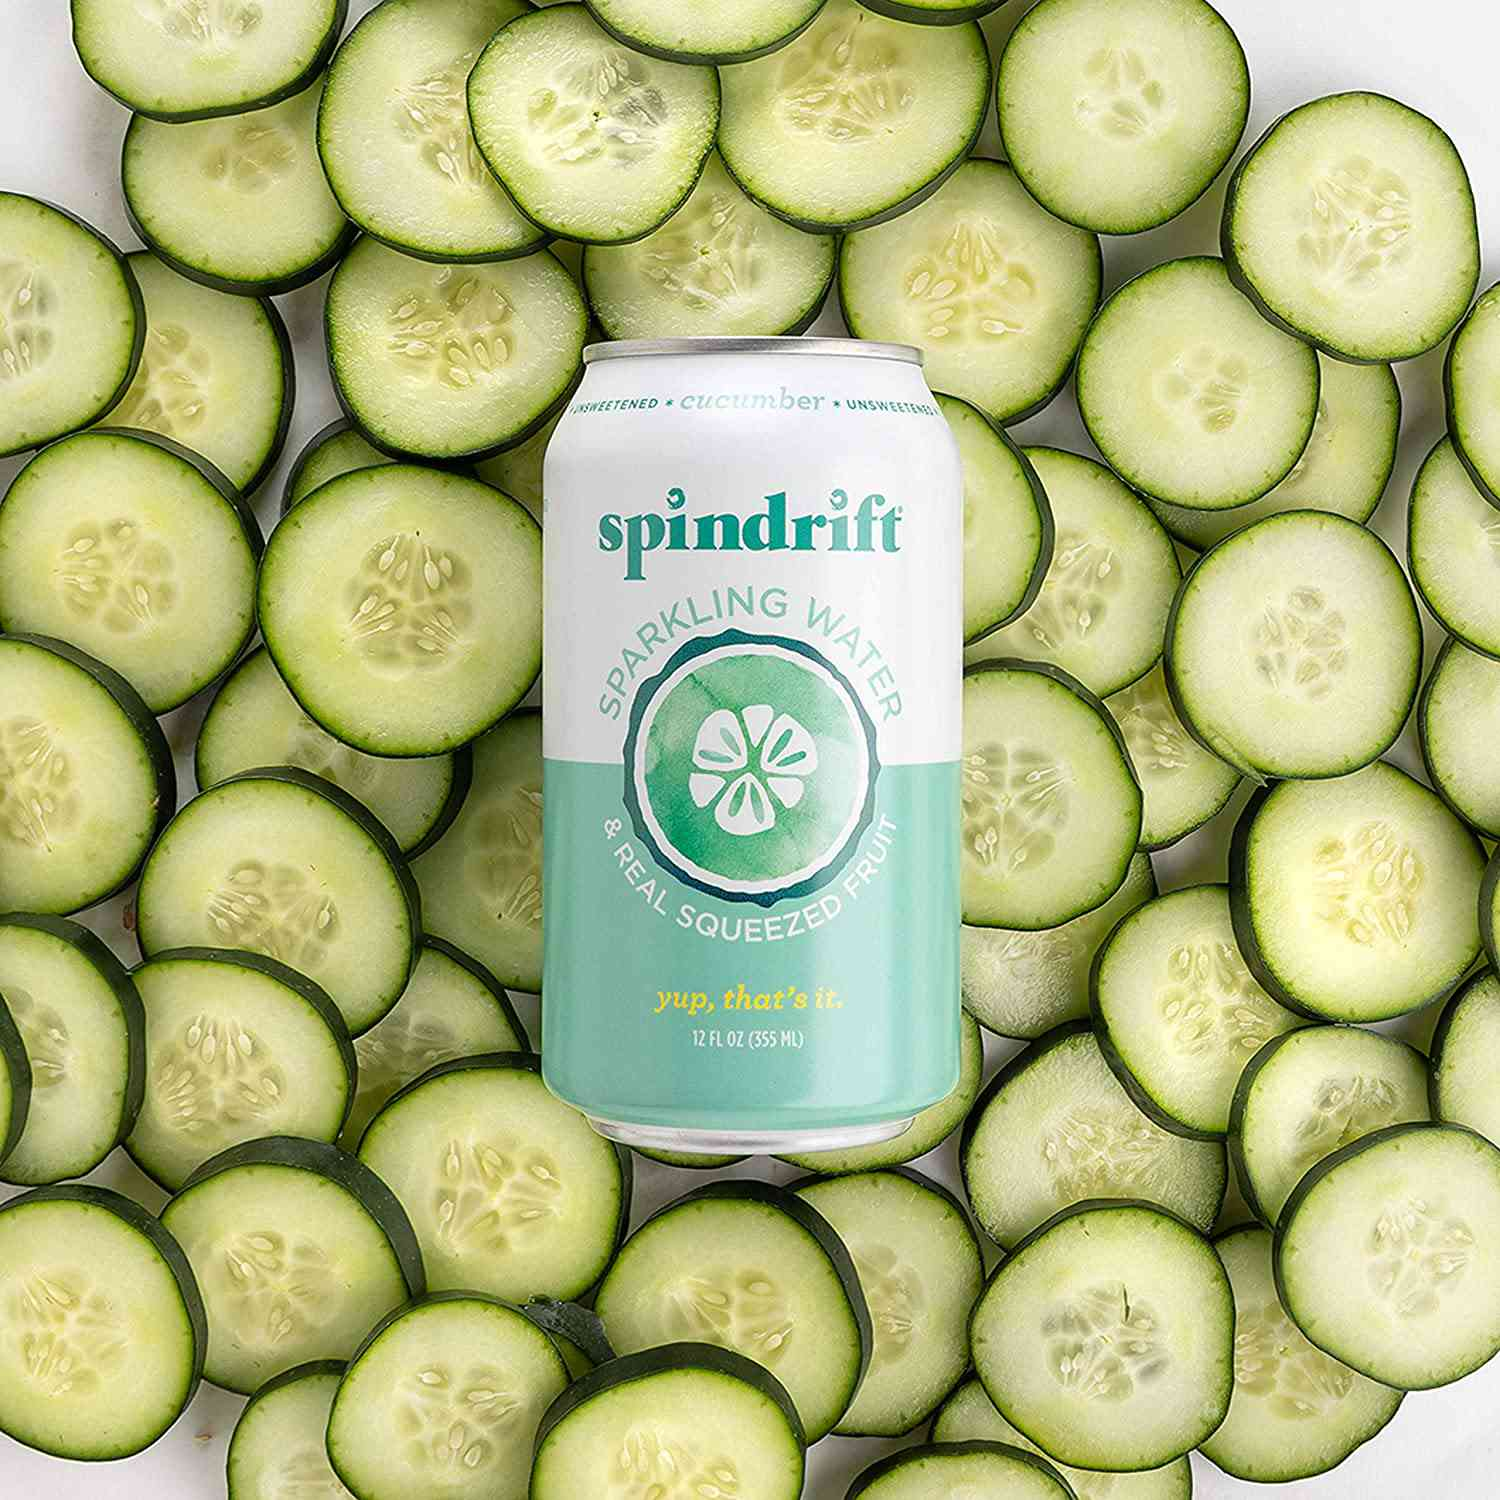 Spindrift Cucumber Flavored Water